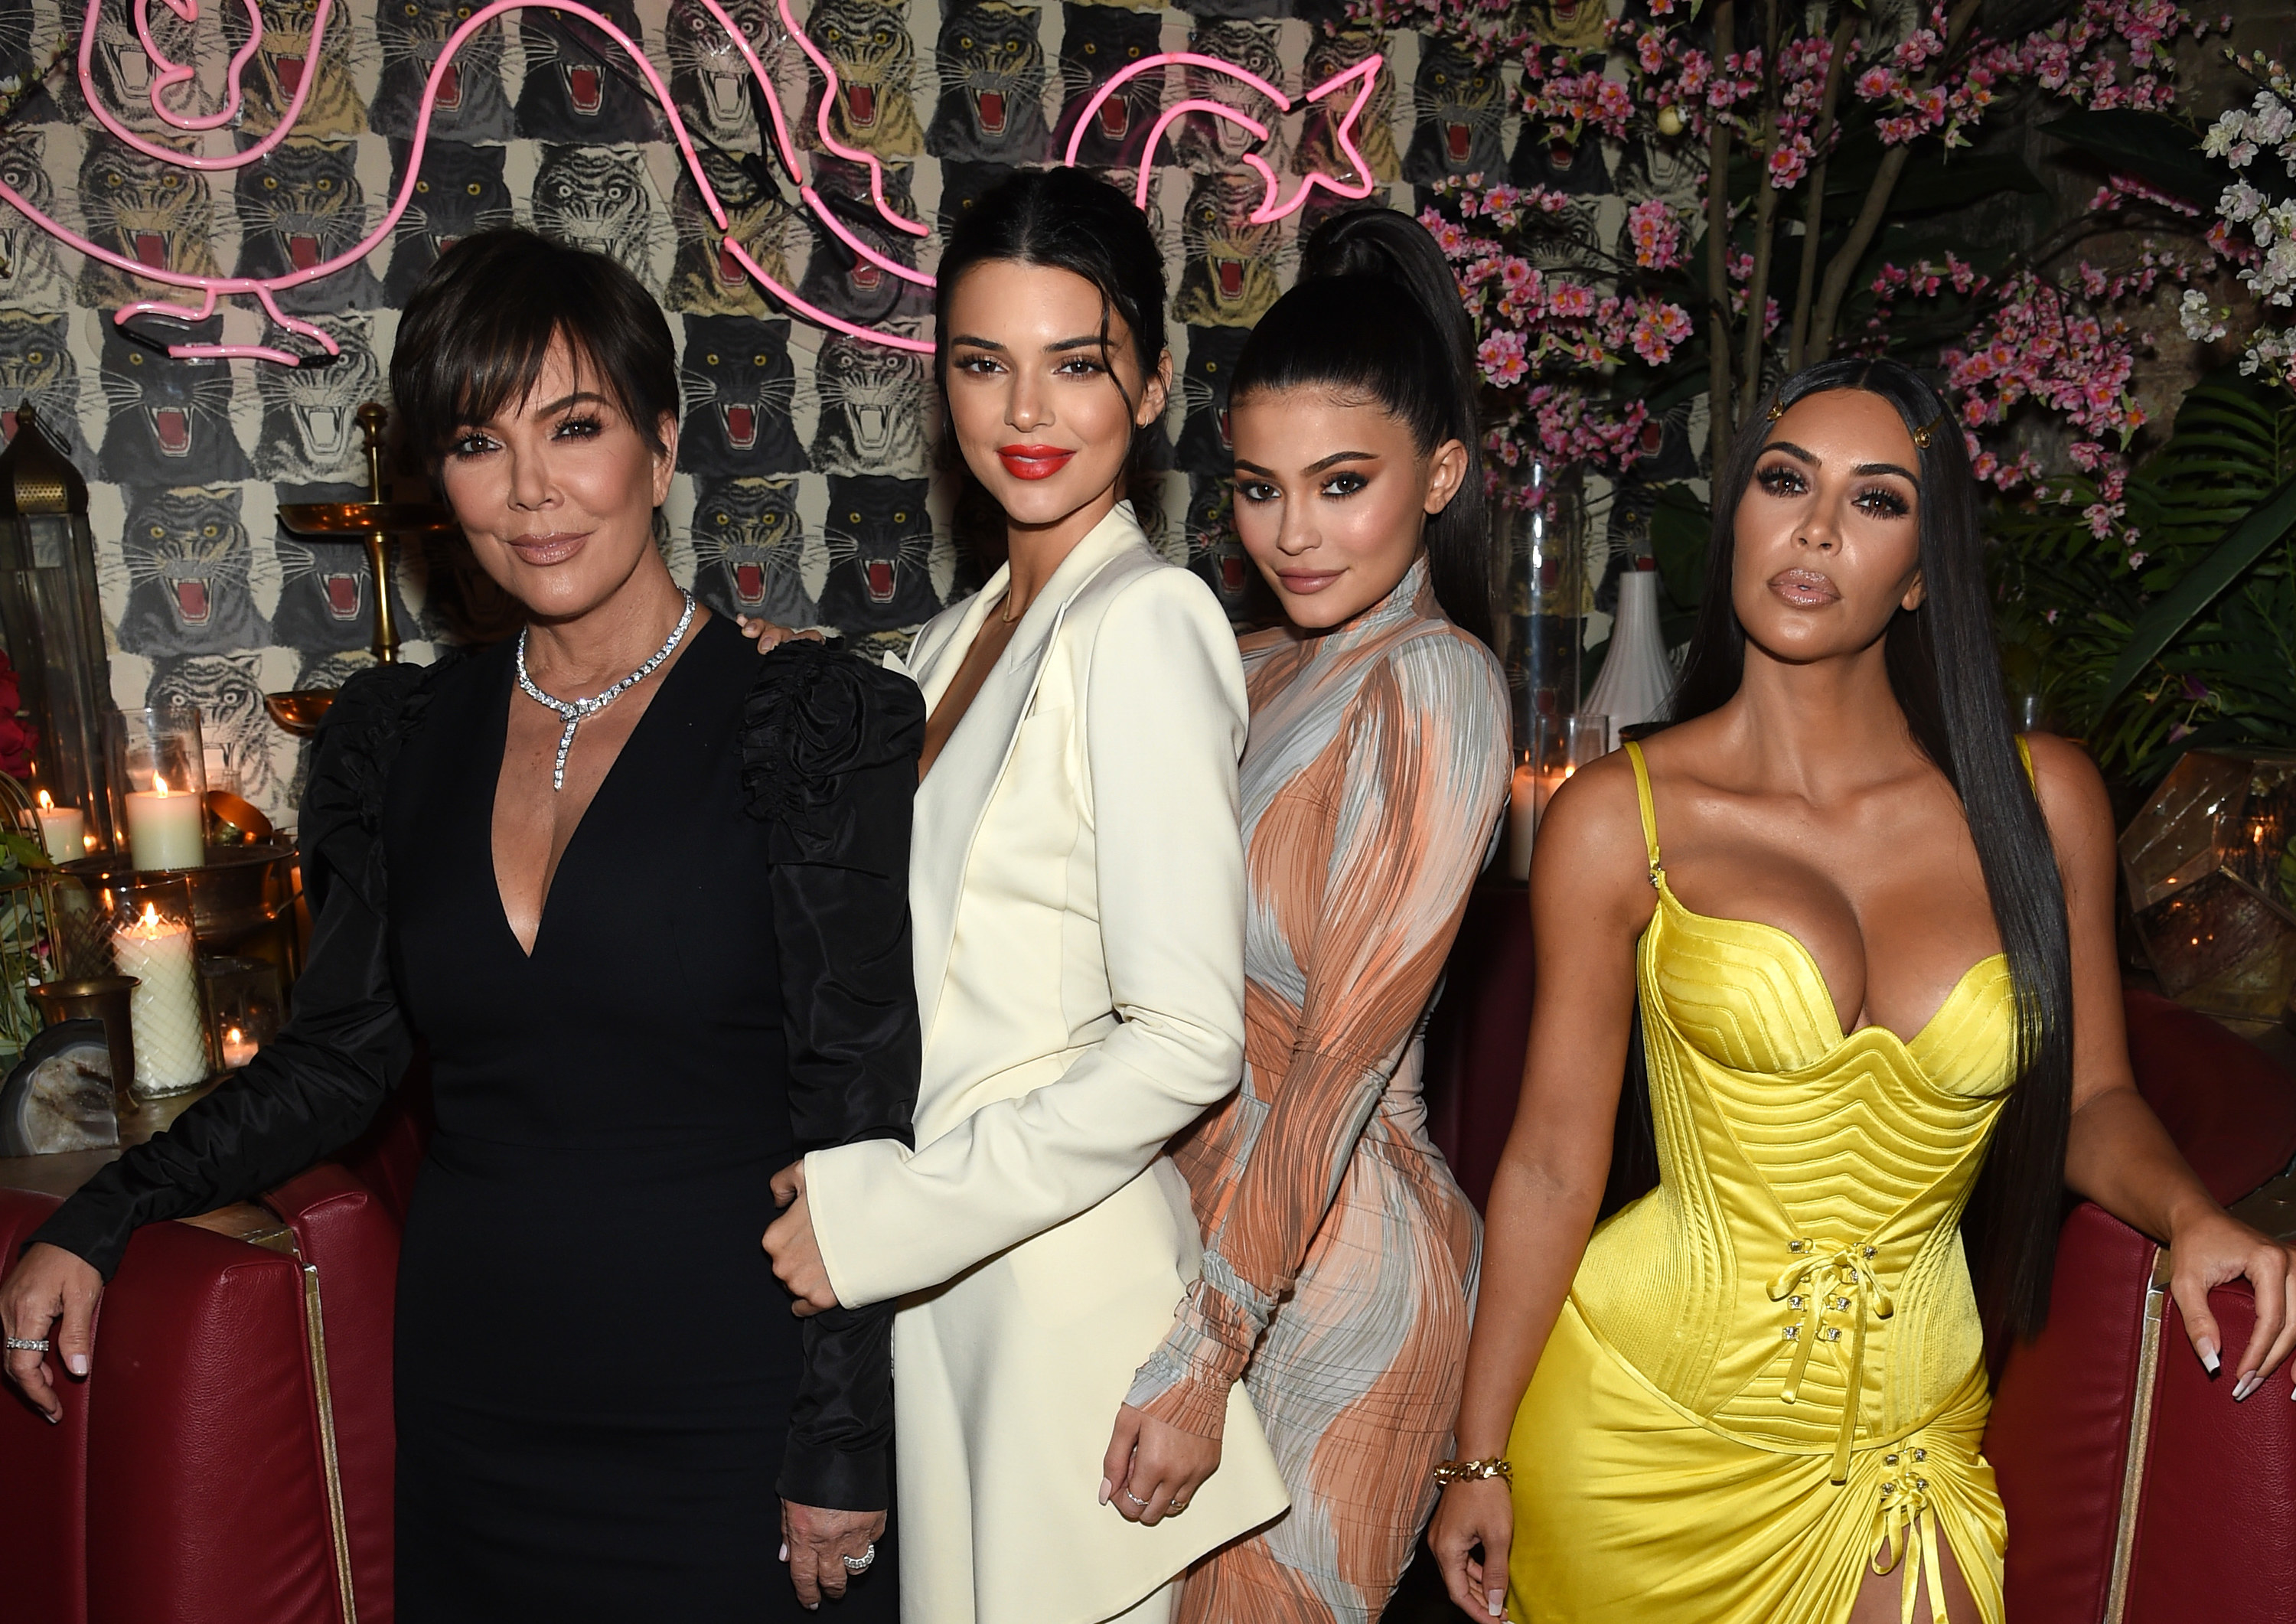 Kris, Kendall, Kylie, and Kim pose together